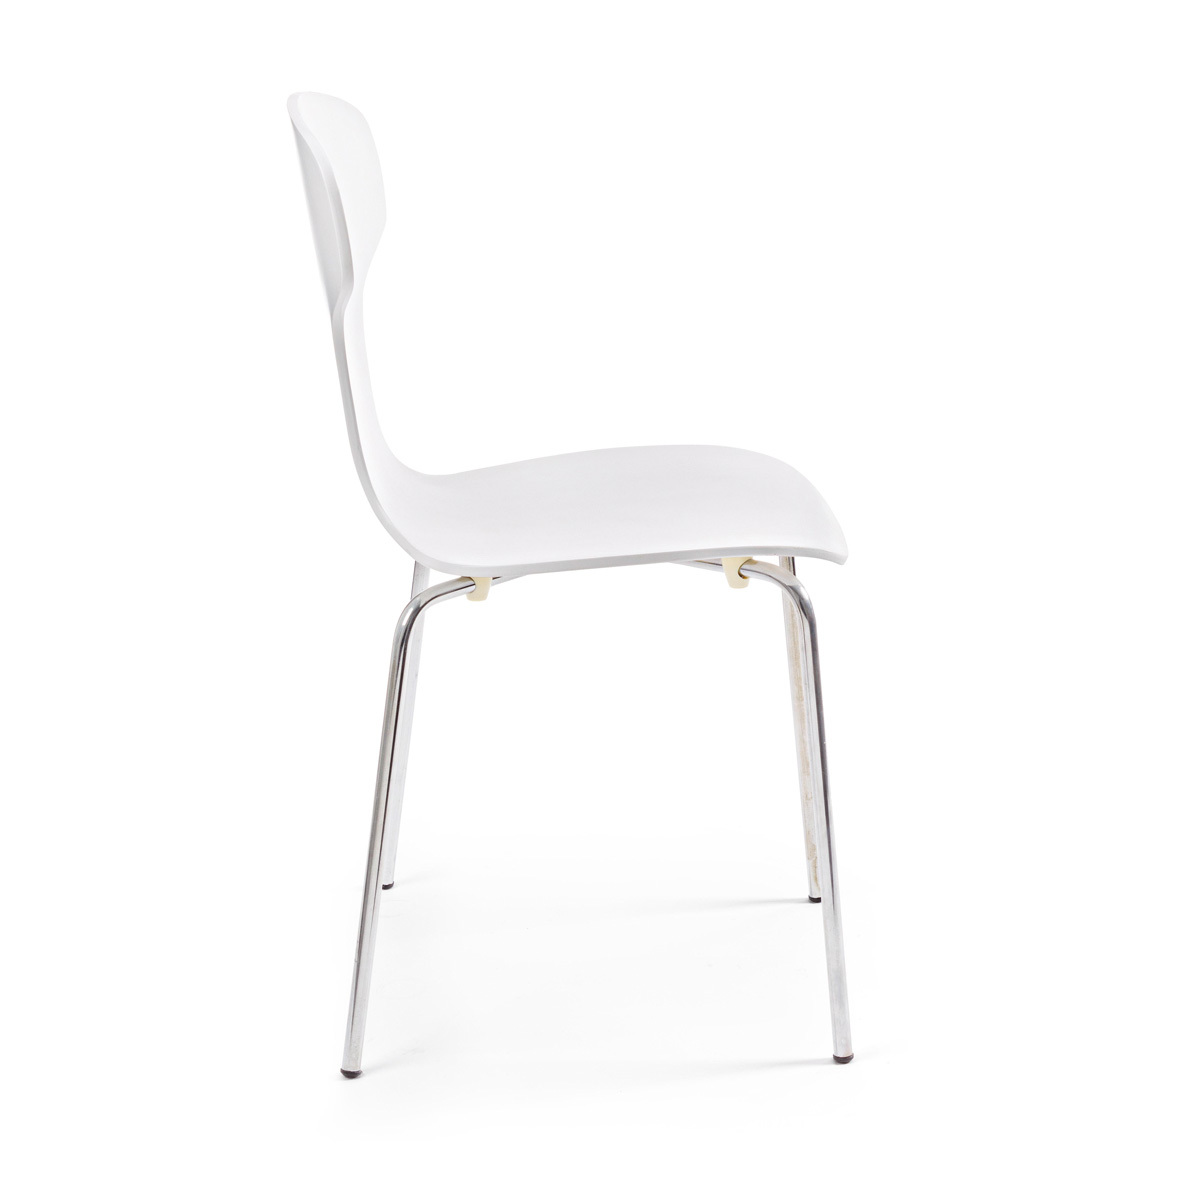 Photos 2: Bizzotto Chair in metal and wood - white 0731622